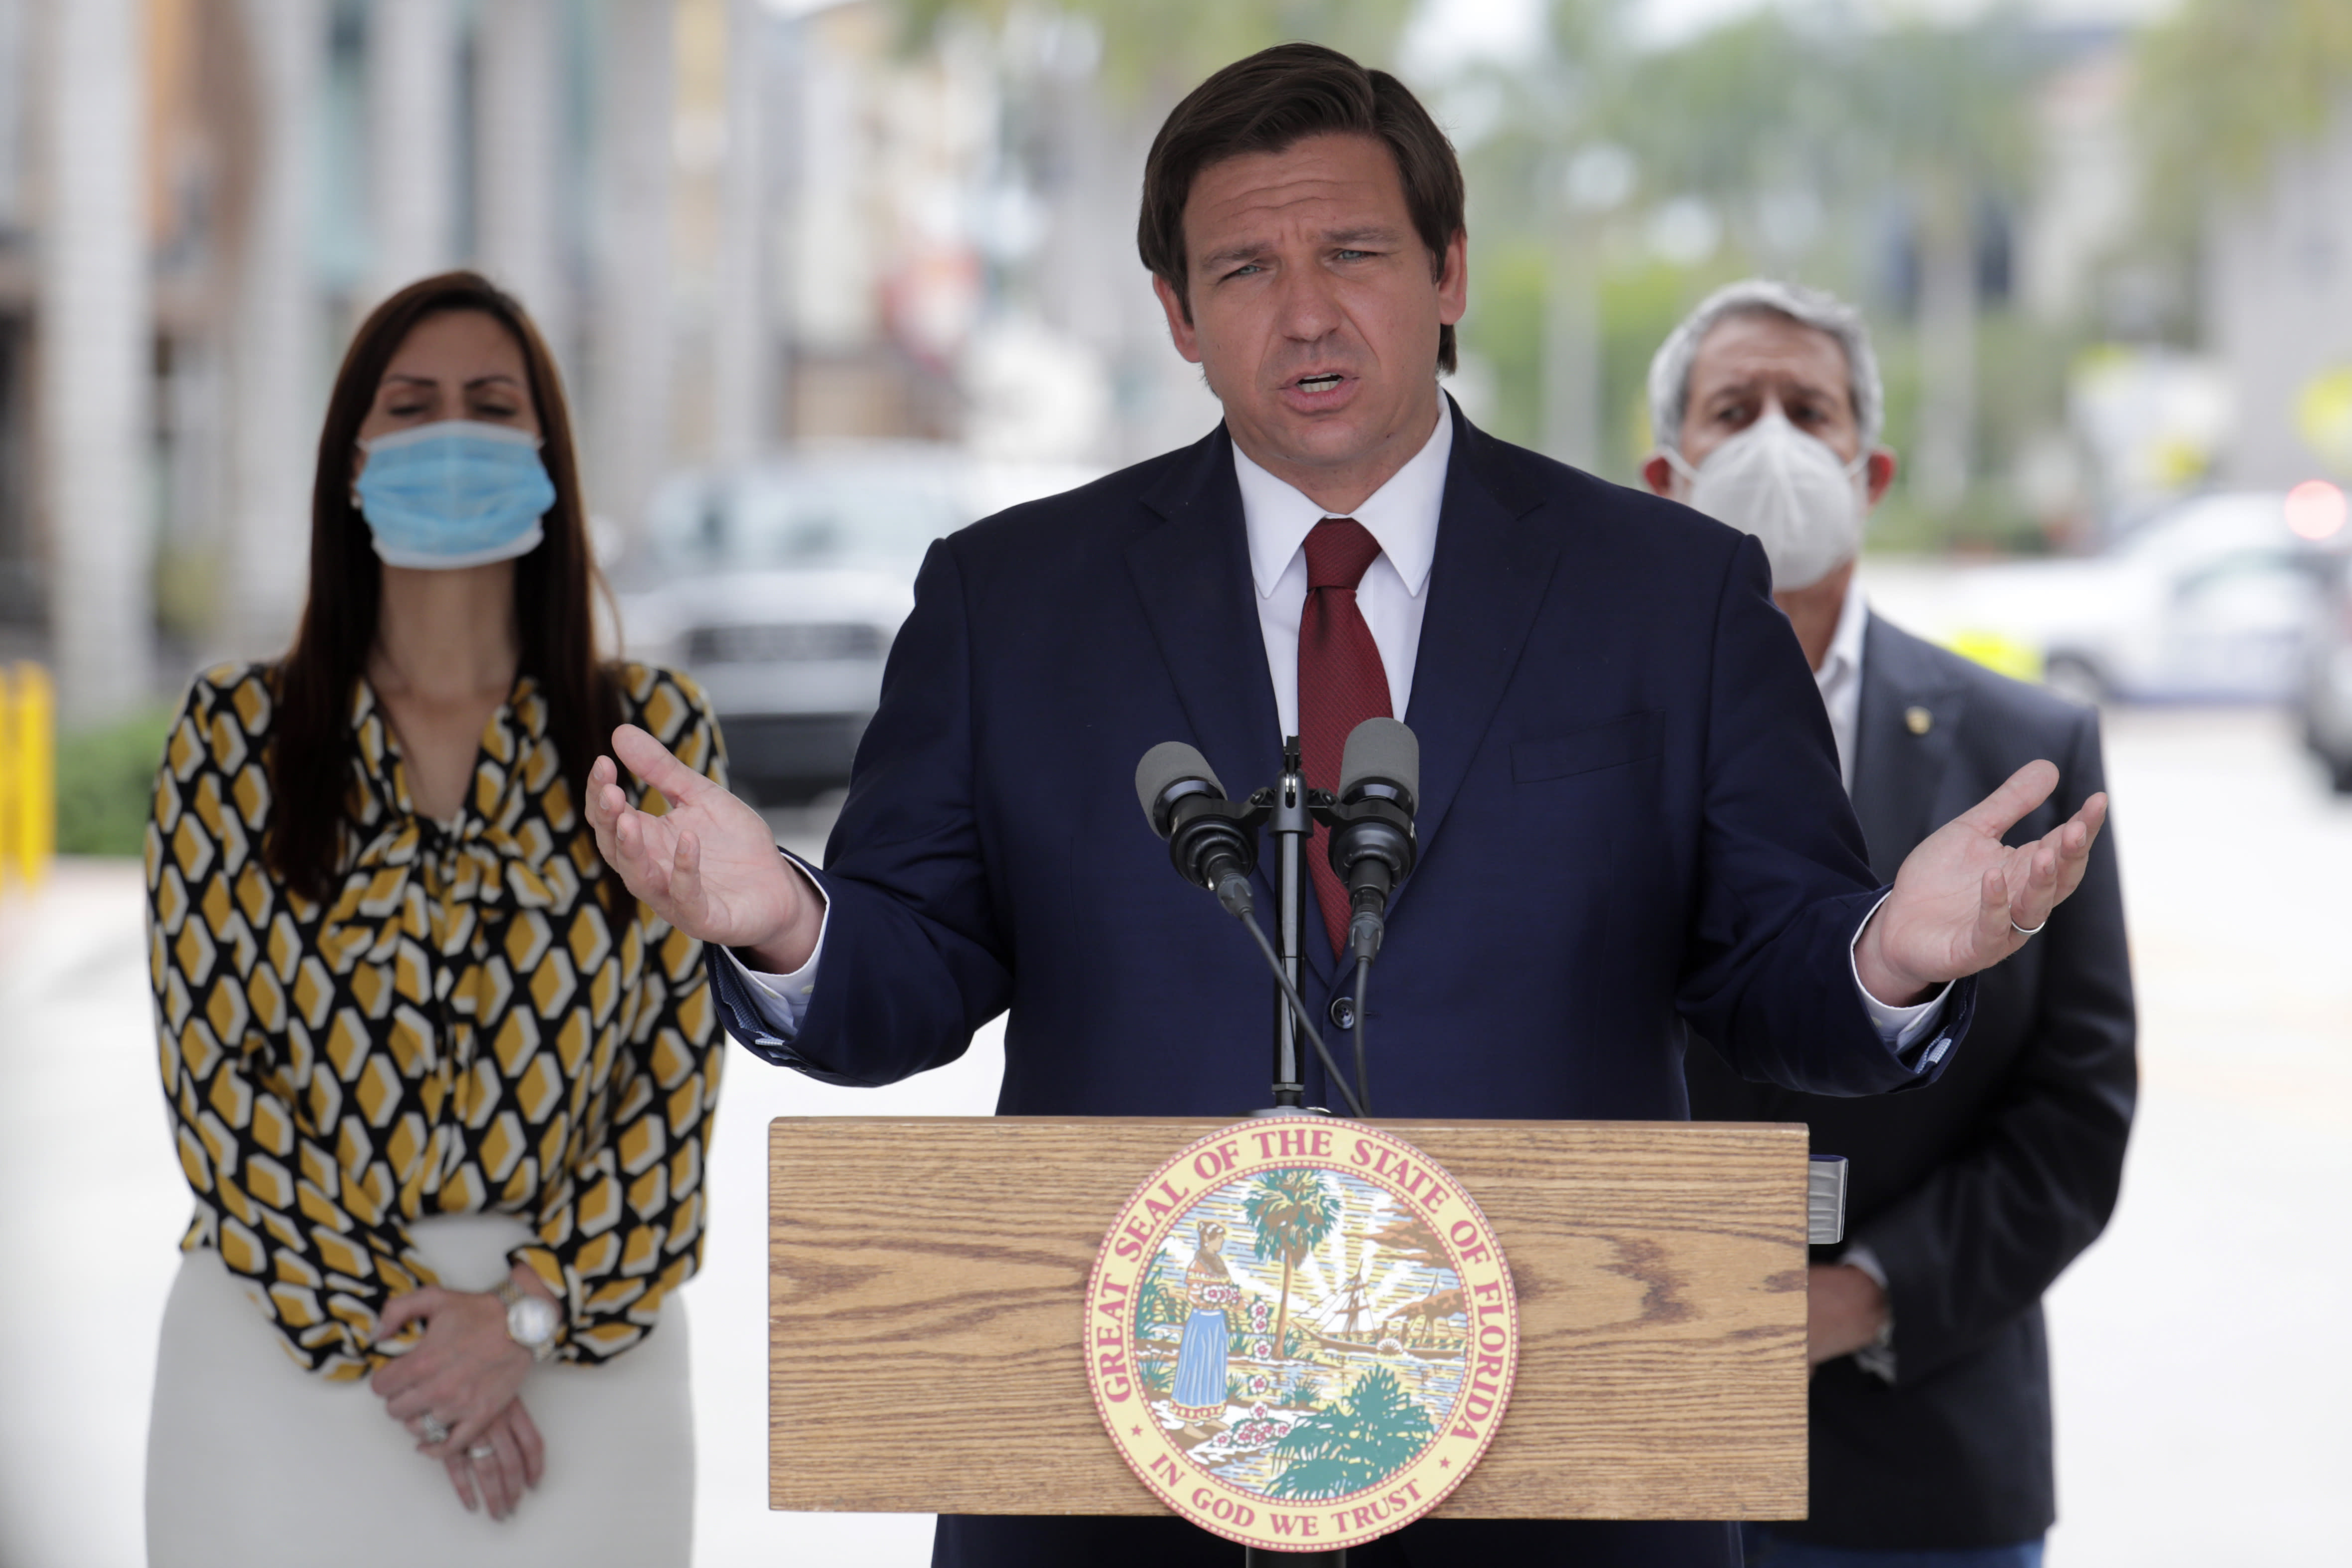 Florida Gov. Ron DeSantis speaks at a news conference during the new coronavirus pandemic, Thursday, May 14, 2020, in Doral, Fla. DeSantis has signed an executive order for the reopening of Miami-Dade and Broward counties on May 18. (AP Photo/Lynne Sladky)